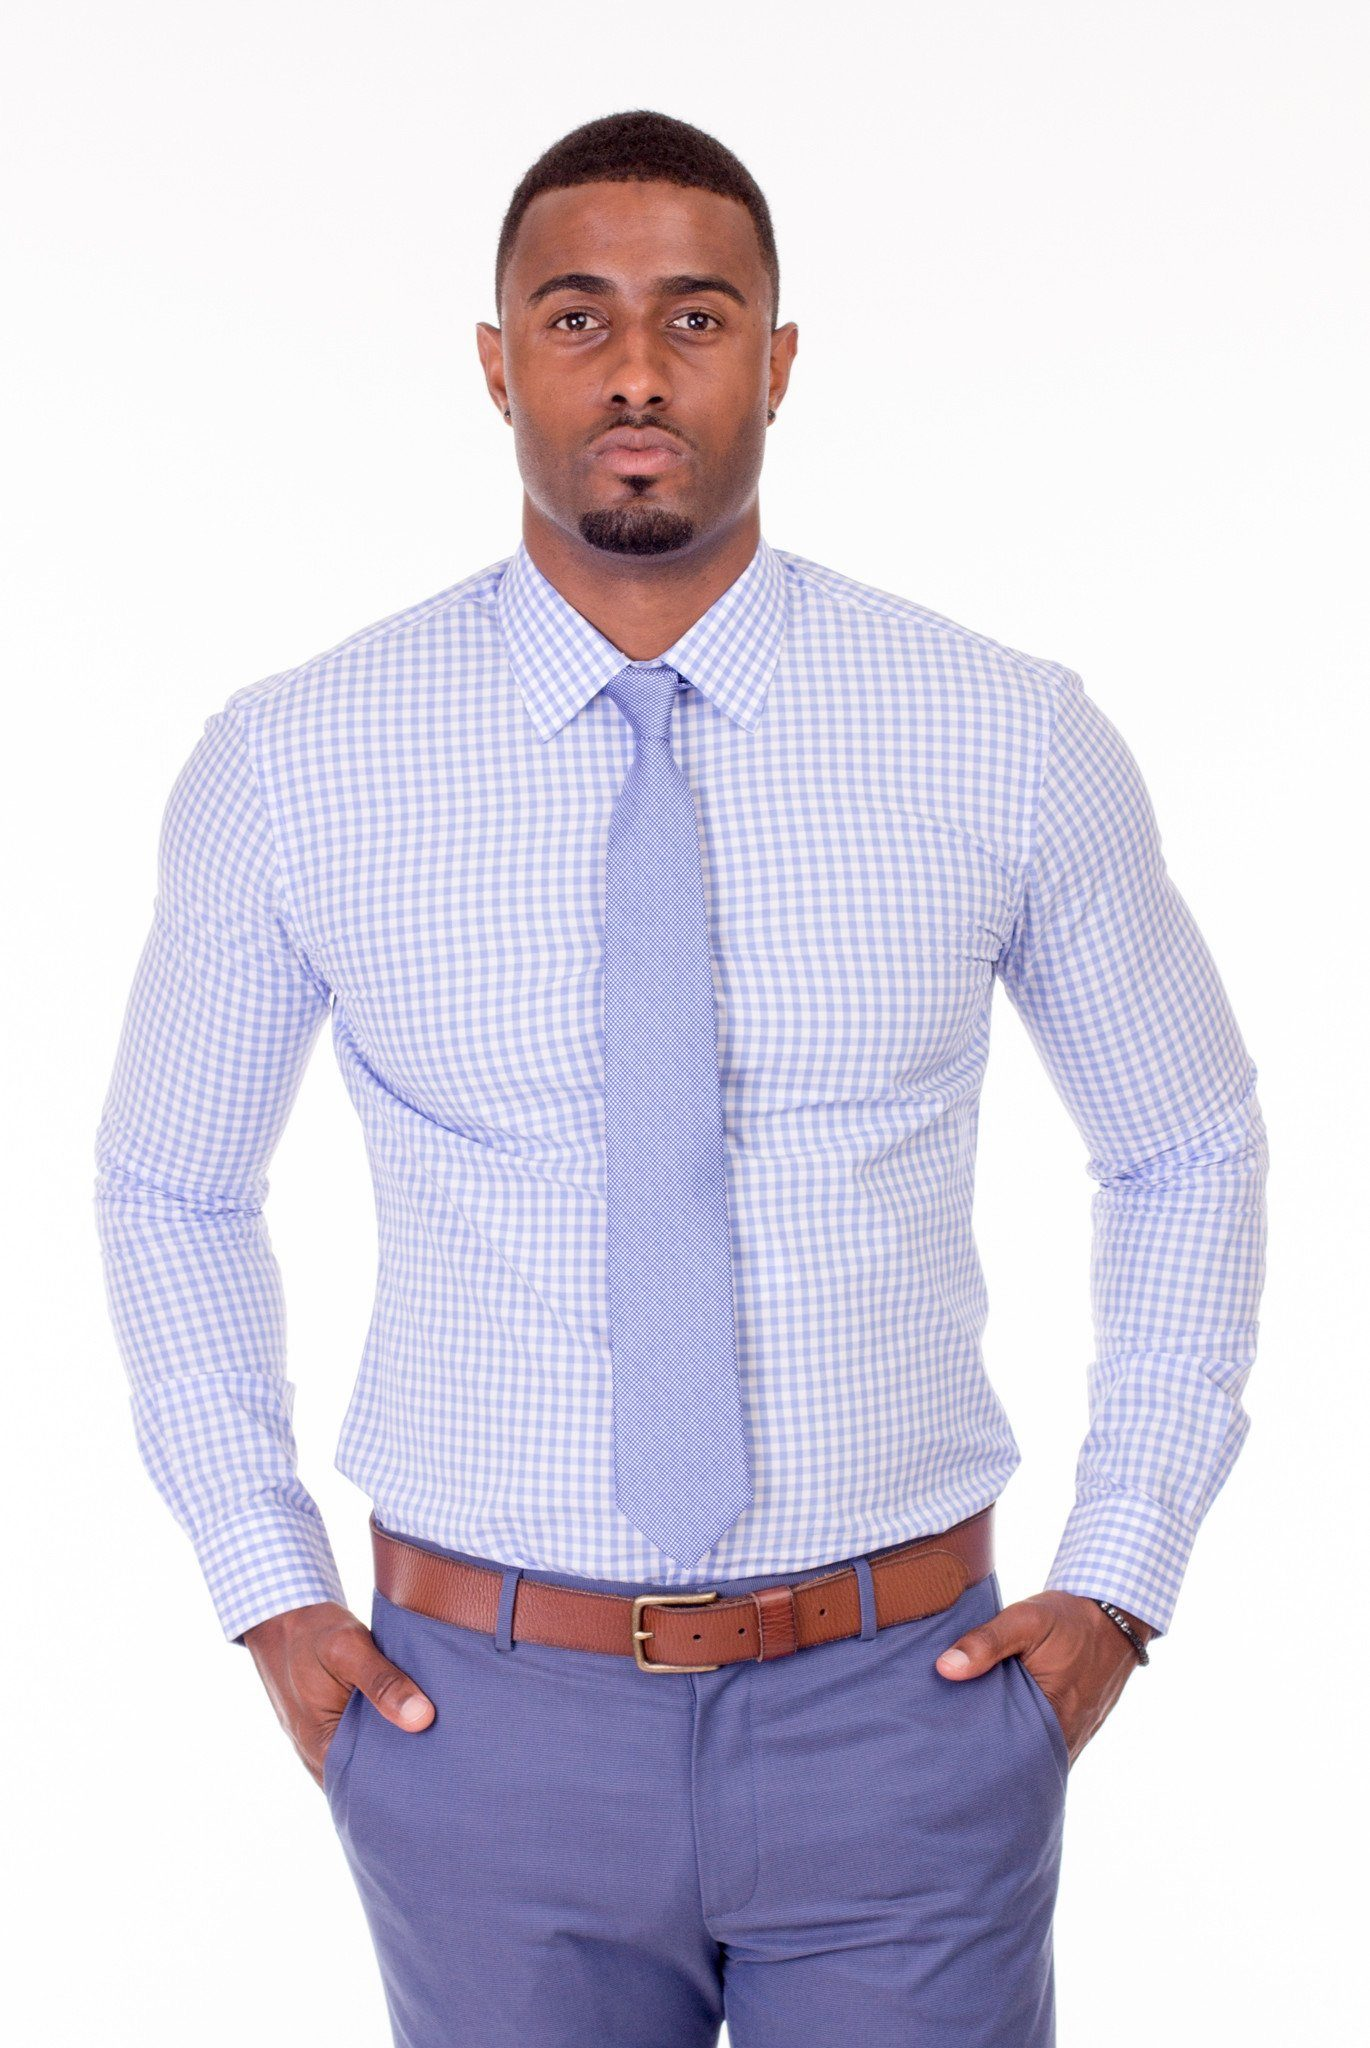 MONACO LIGHT BLUE GINGHAM DRESS SHIRT | Poor Little Rich Boy Clothing